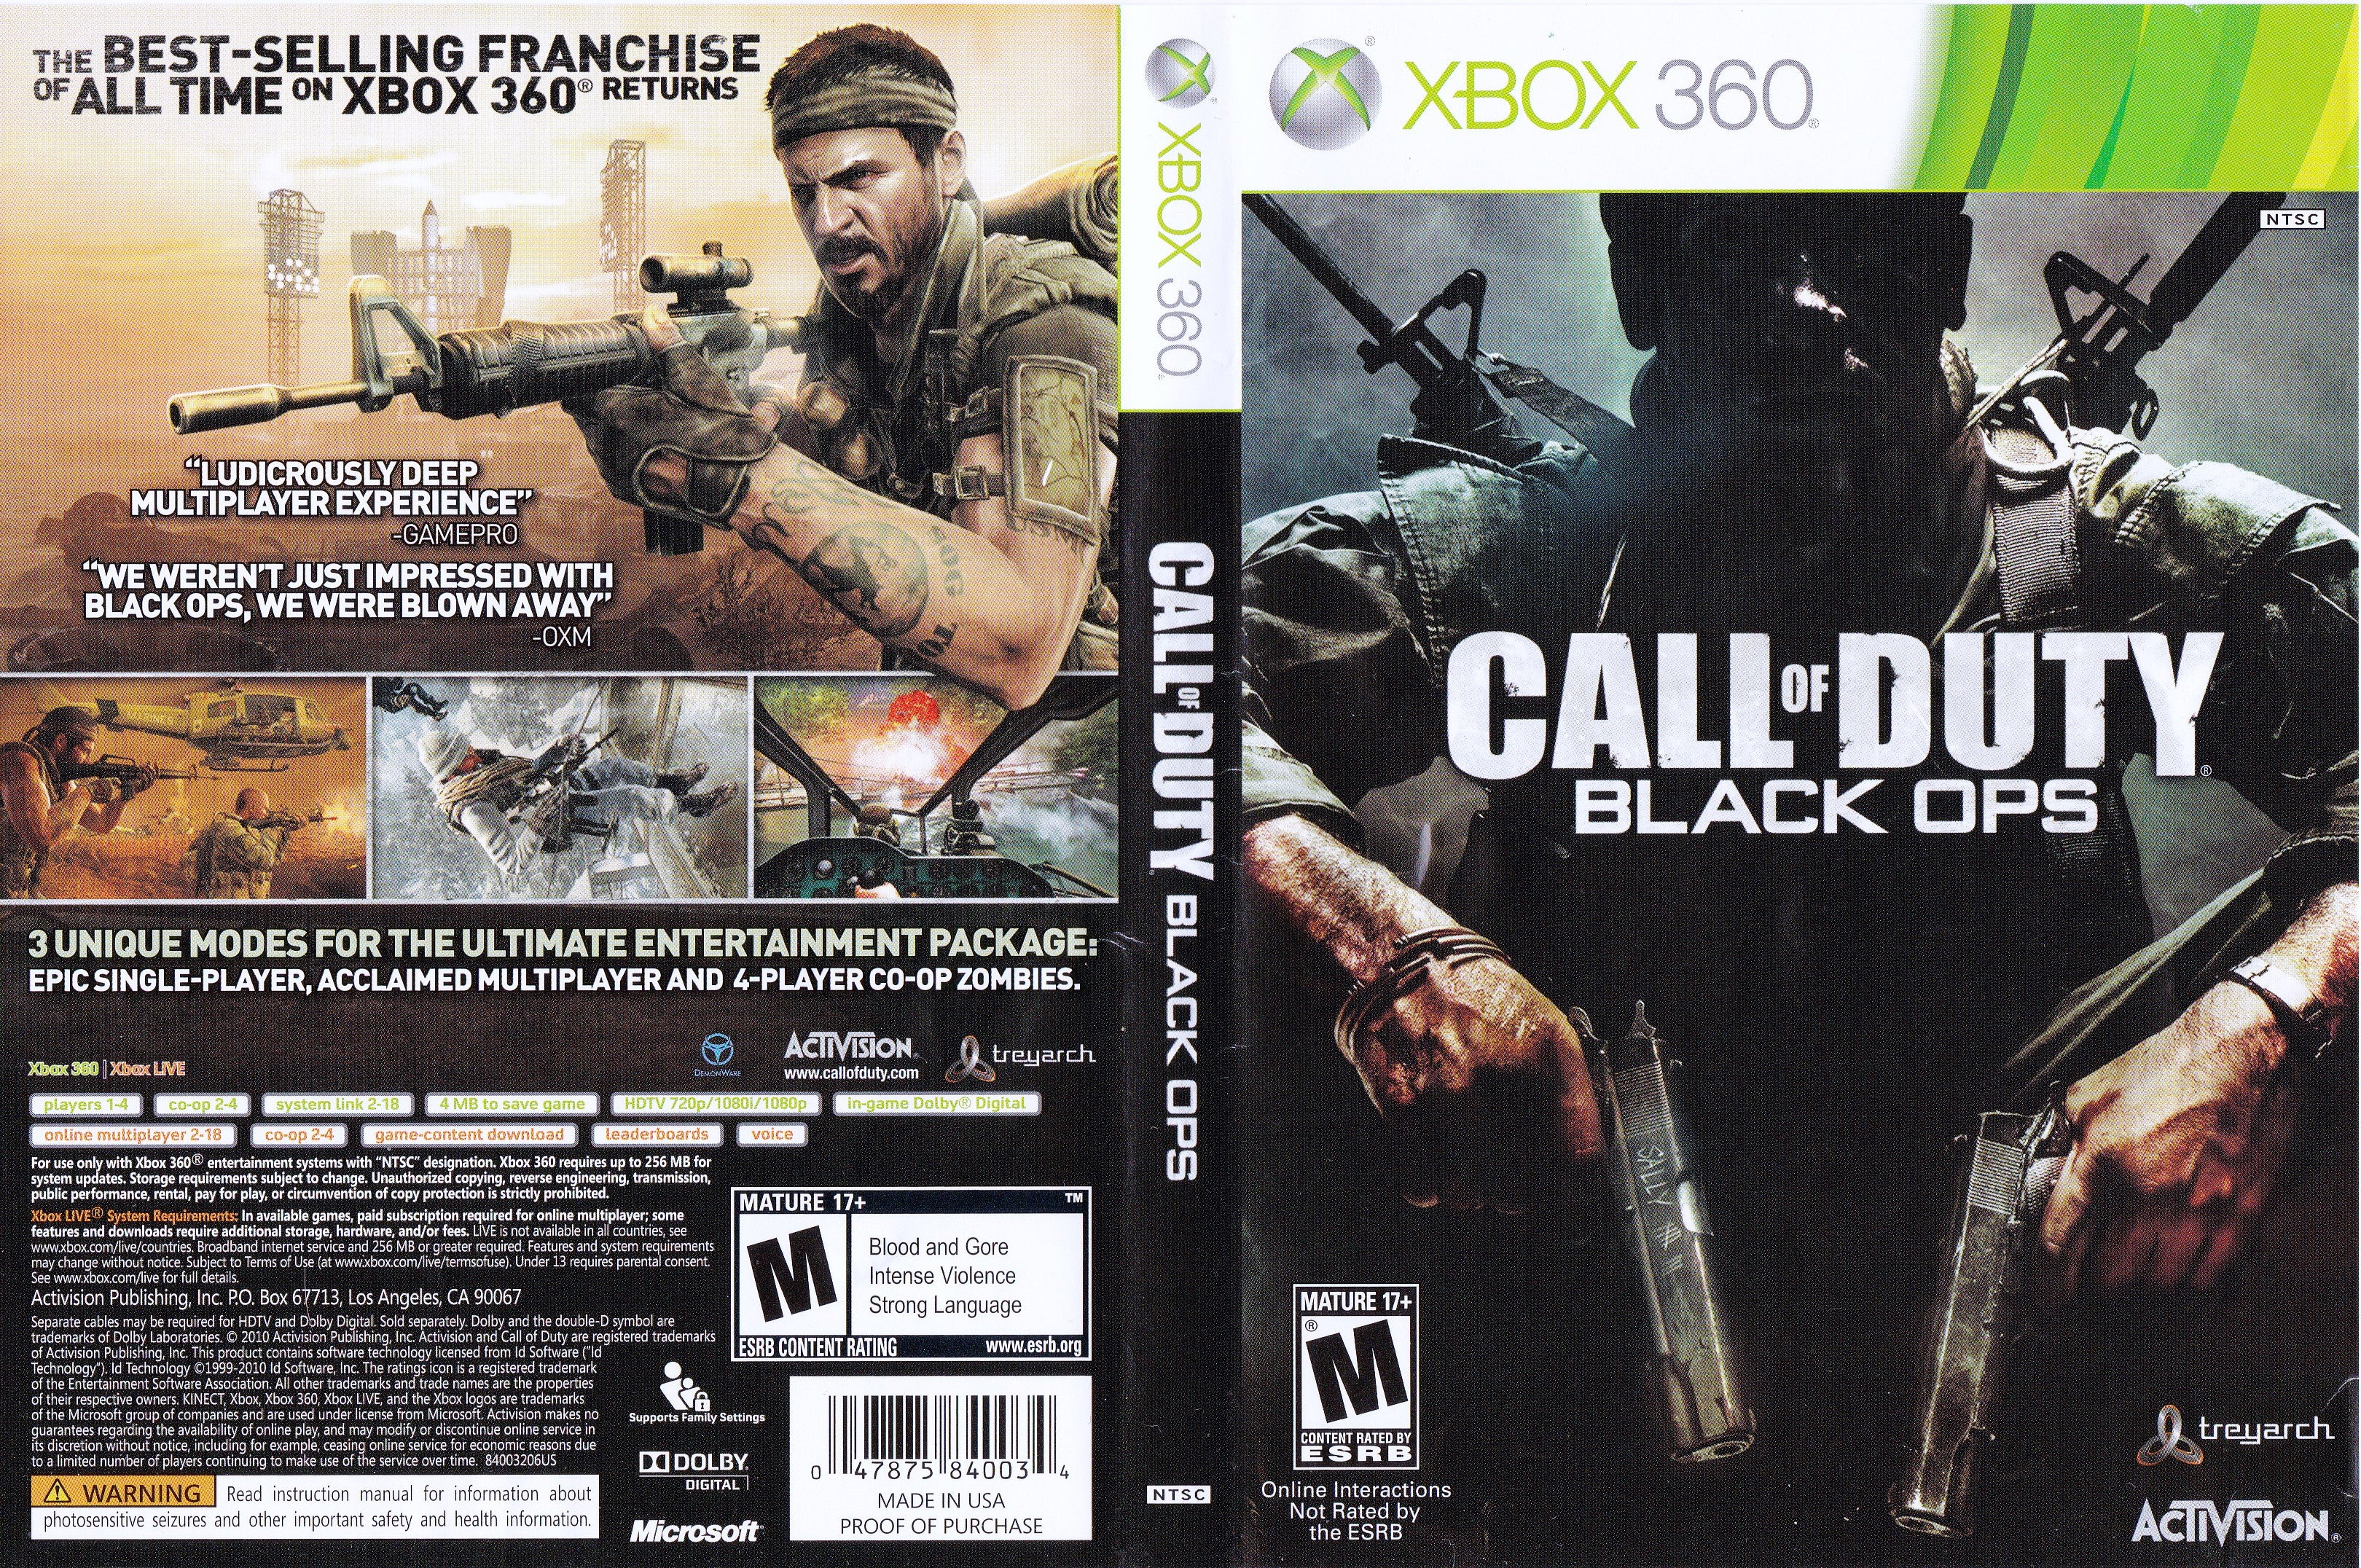 Call of duty: black ops for xbox 360 | gamestop.